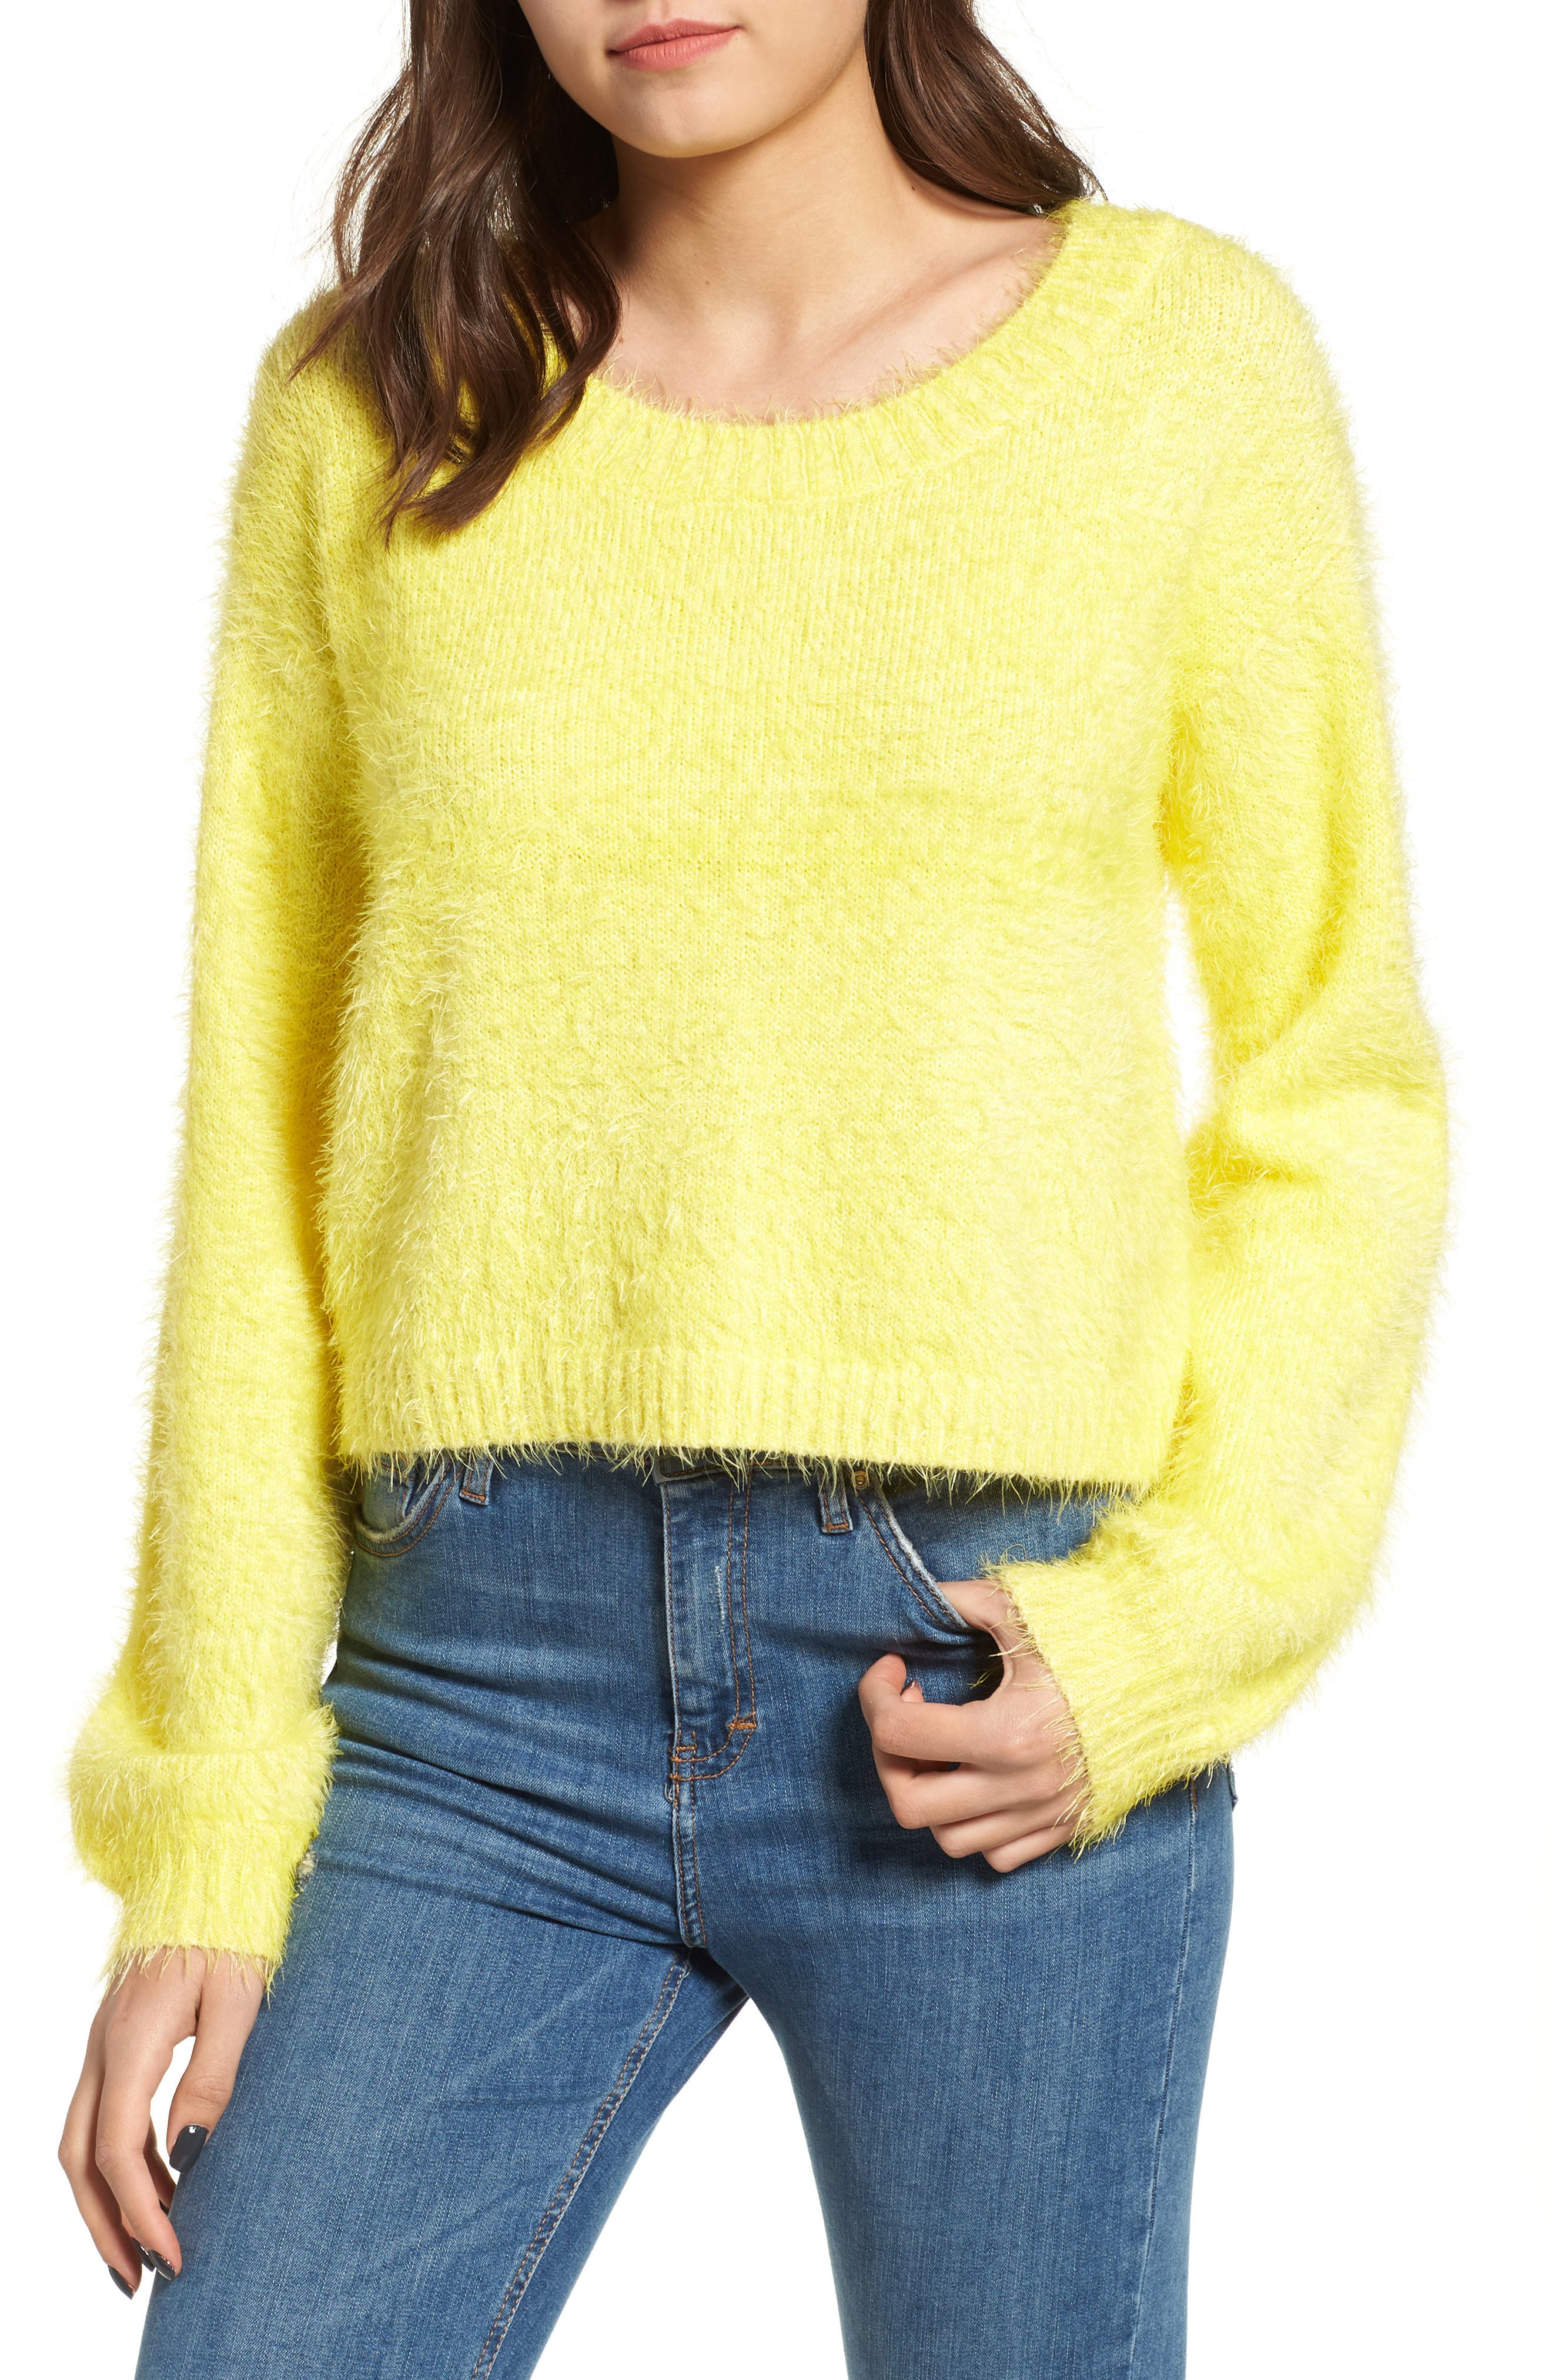 Clover Fields Chenille Sweater,                             Main thumbnail 1, color,                             MARIGOLD